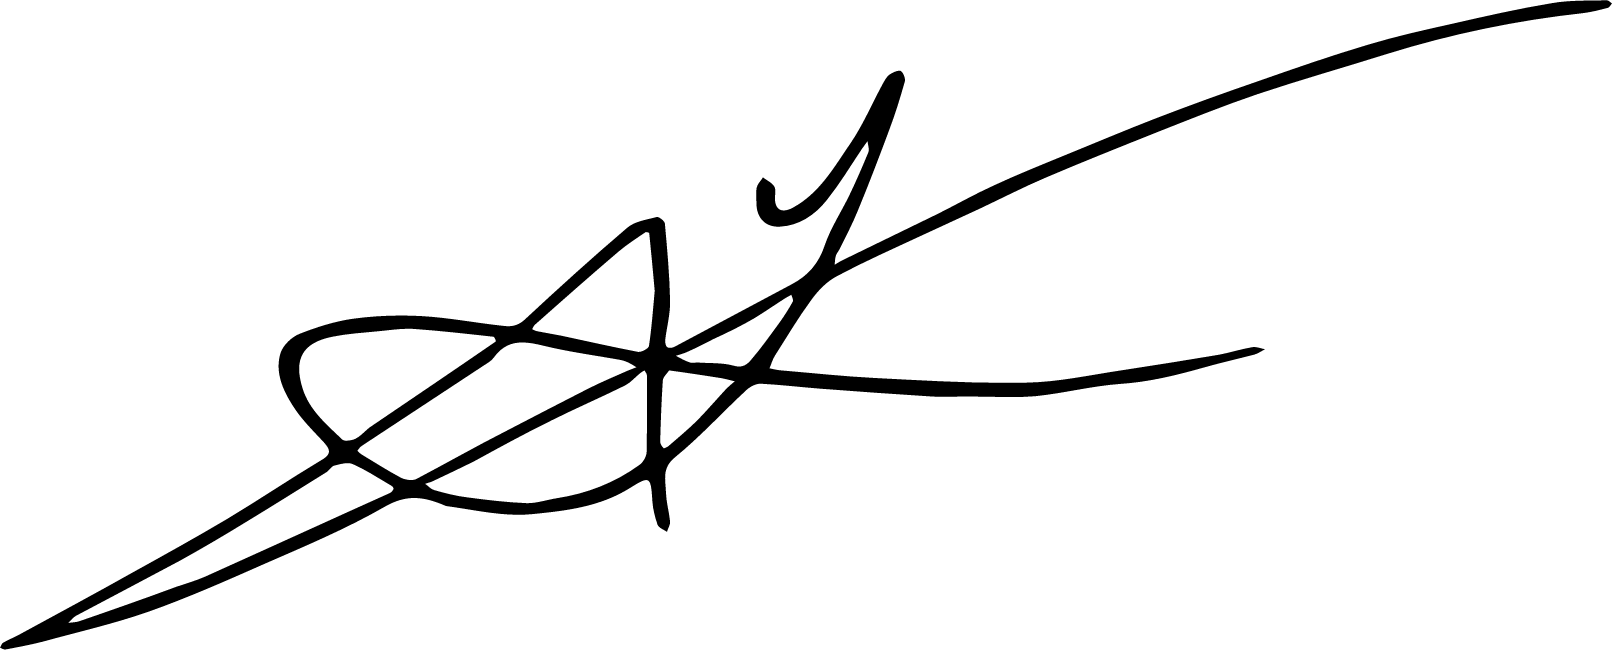 Signature Yassine A.